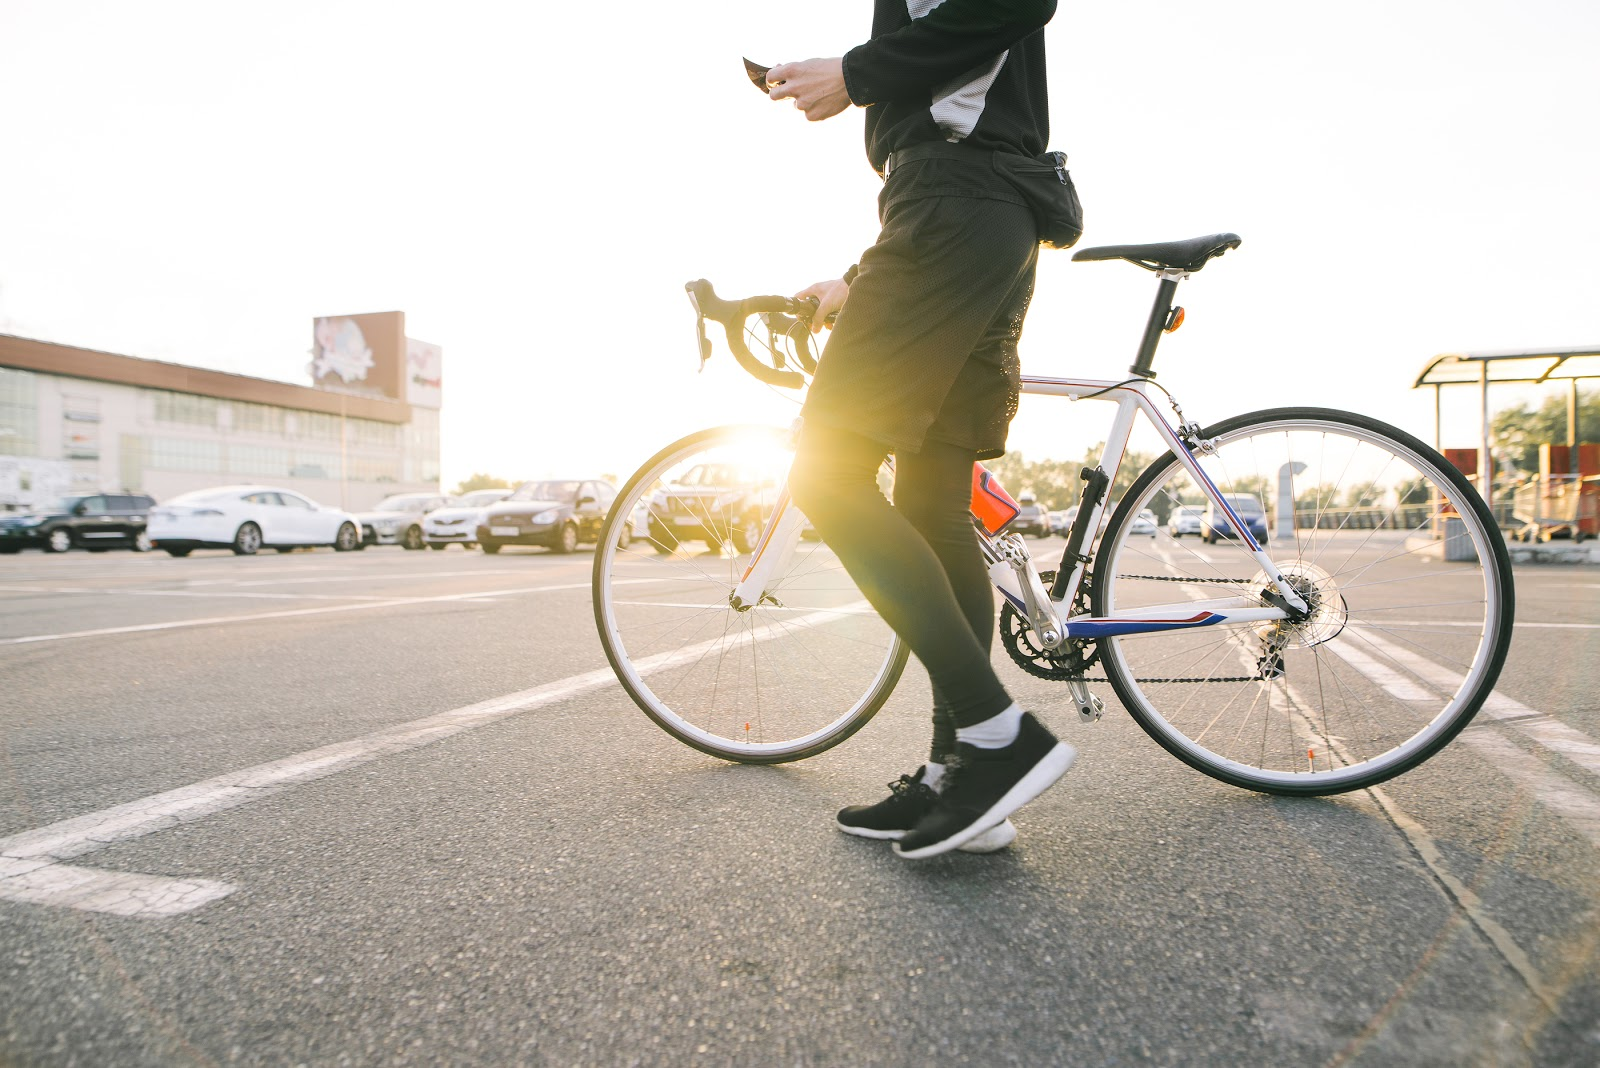 Male-Cyclist-in-street-with-bicycle